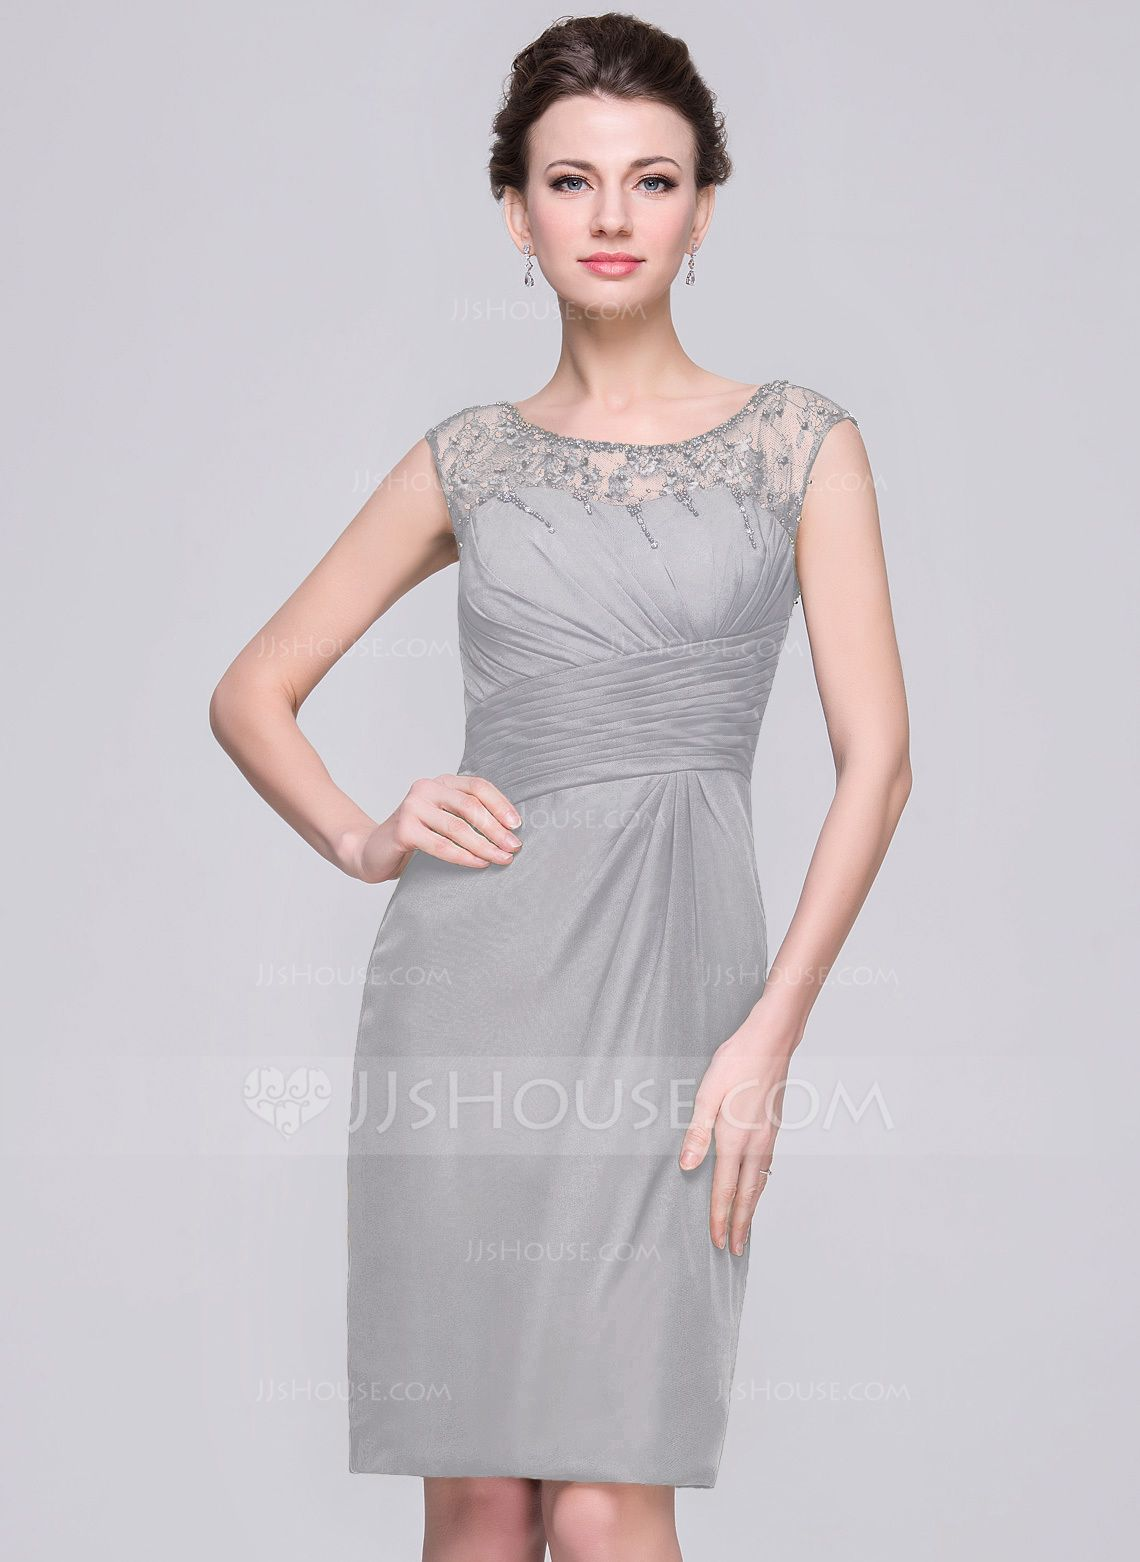 269e1120289 Sheath Column Scoop Neck Knee-Length Chiffon Mother of the Bride Dress With  Ruffle Lace Beading Sequins (008056833) - JJsHouse